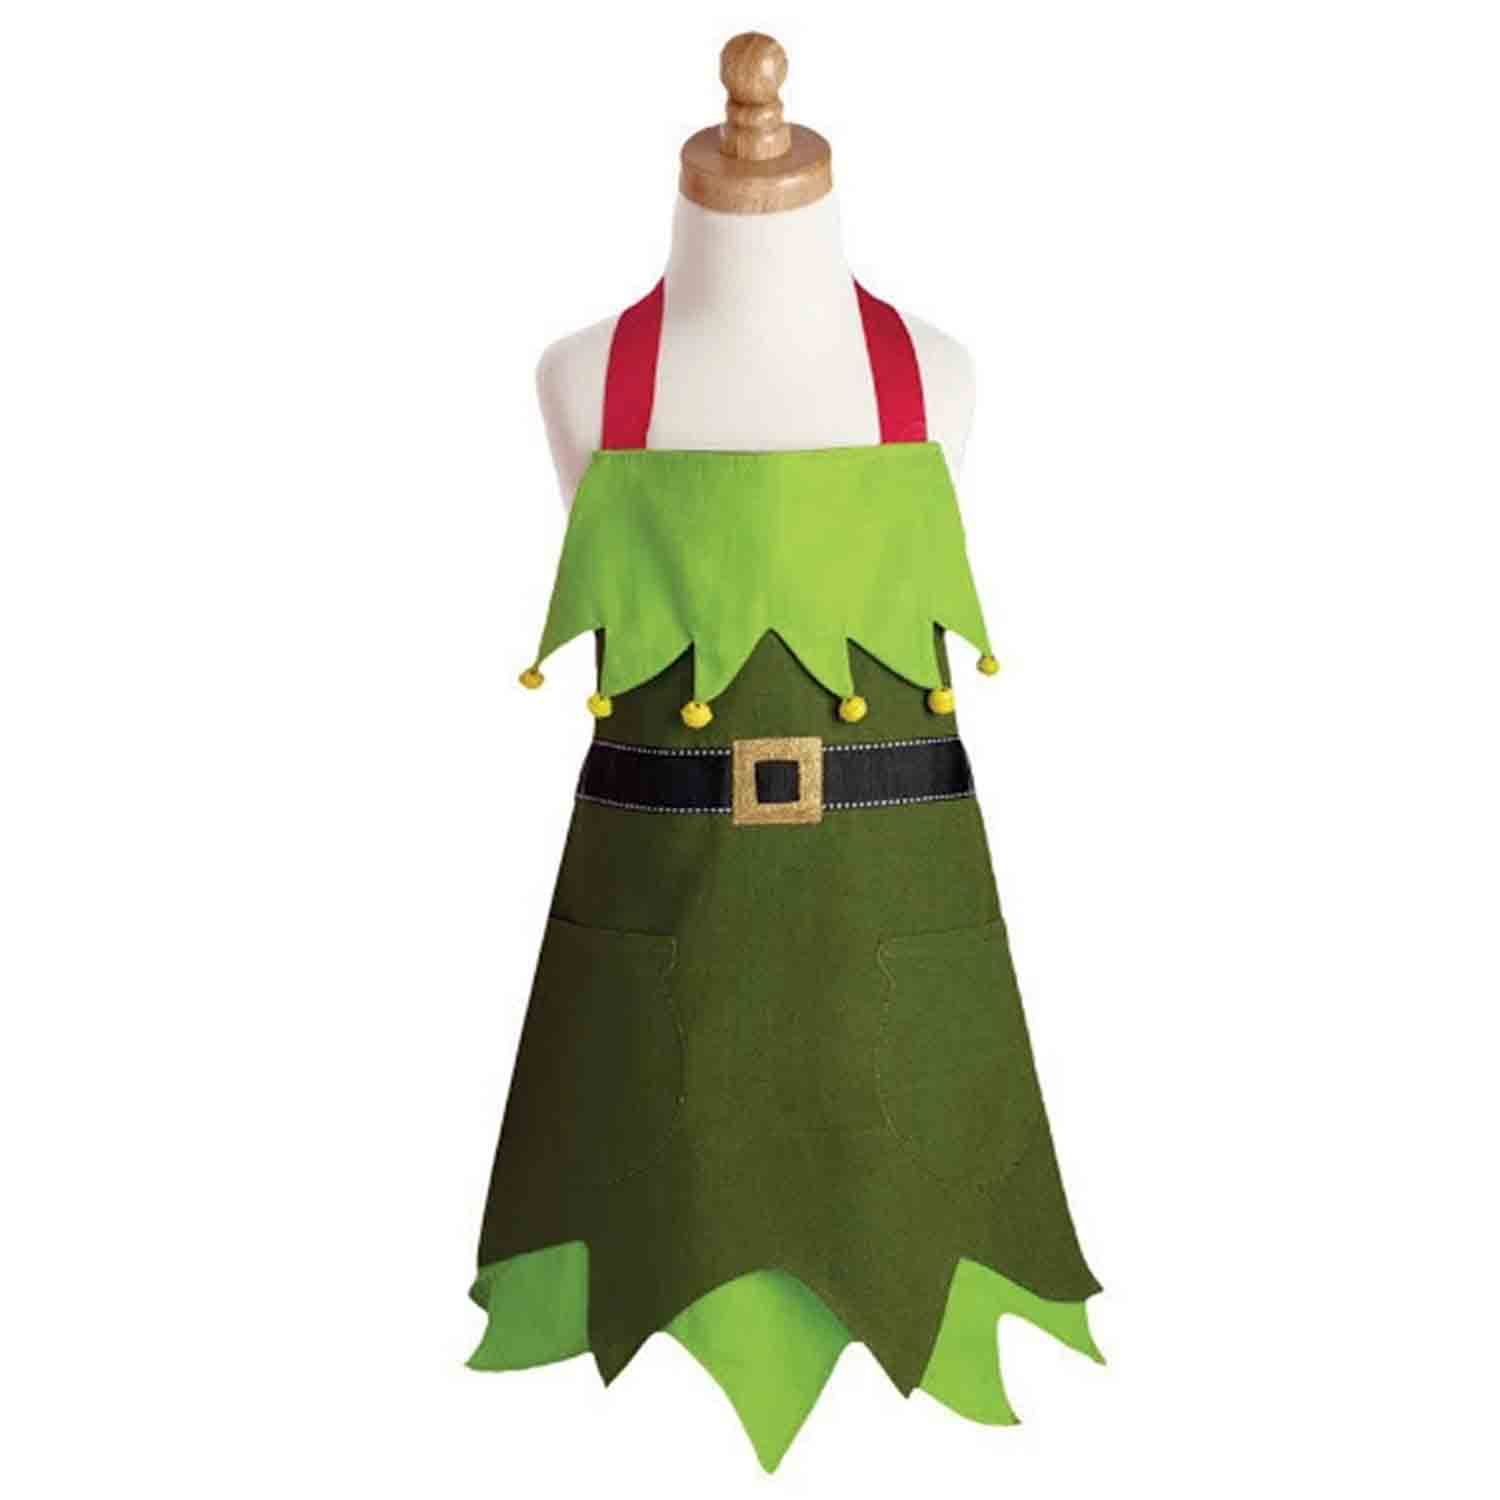 Kids' Apron - Elf